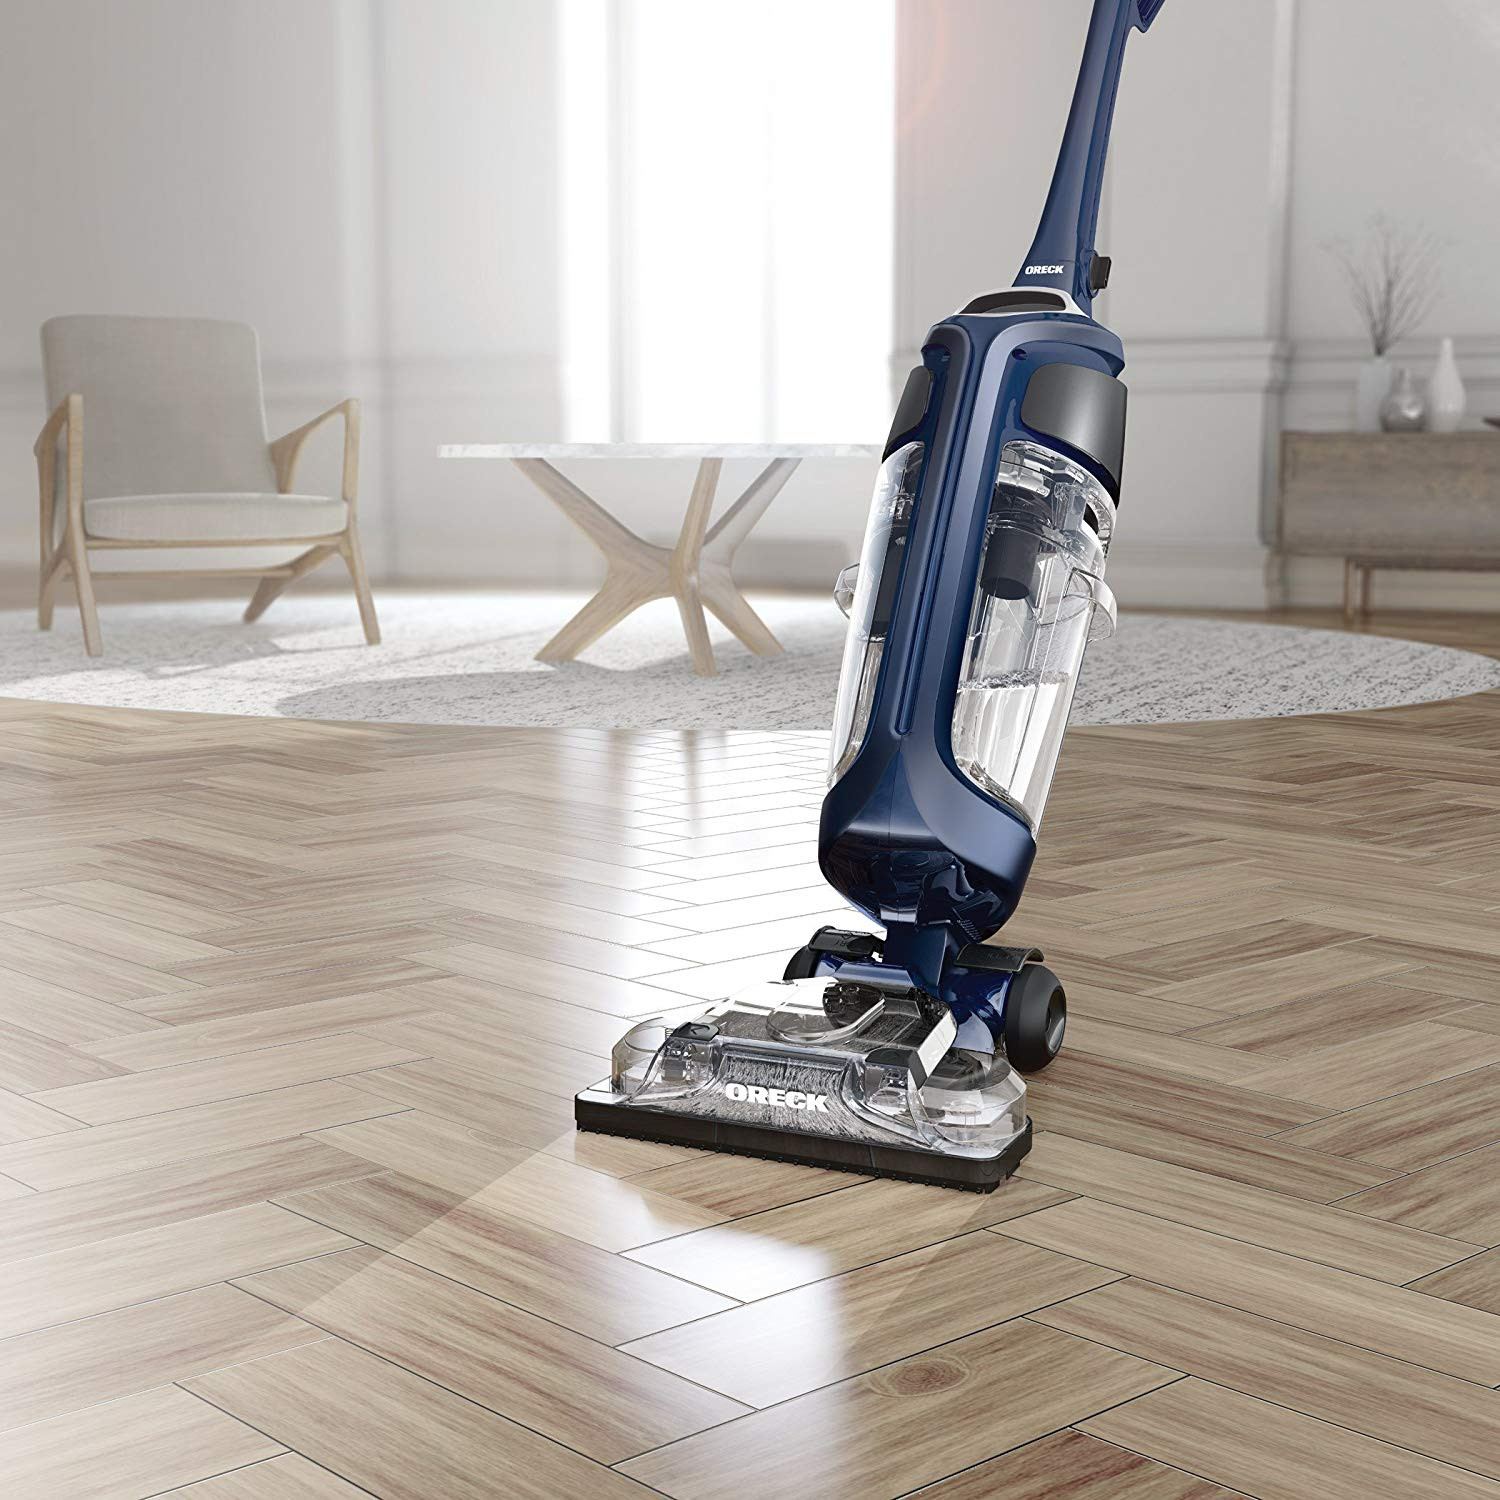 professional hardwood floor cleaning service of amazon com oreck surface scrub hard floor cleaner corded home pertaining to amazon com oreck surface scrub hard floor cleaner corded home kitchen